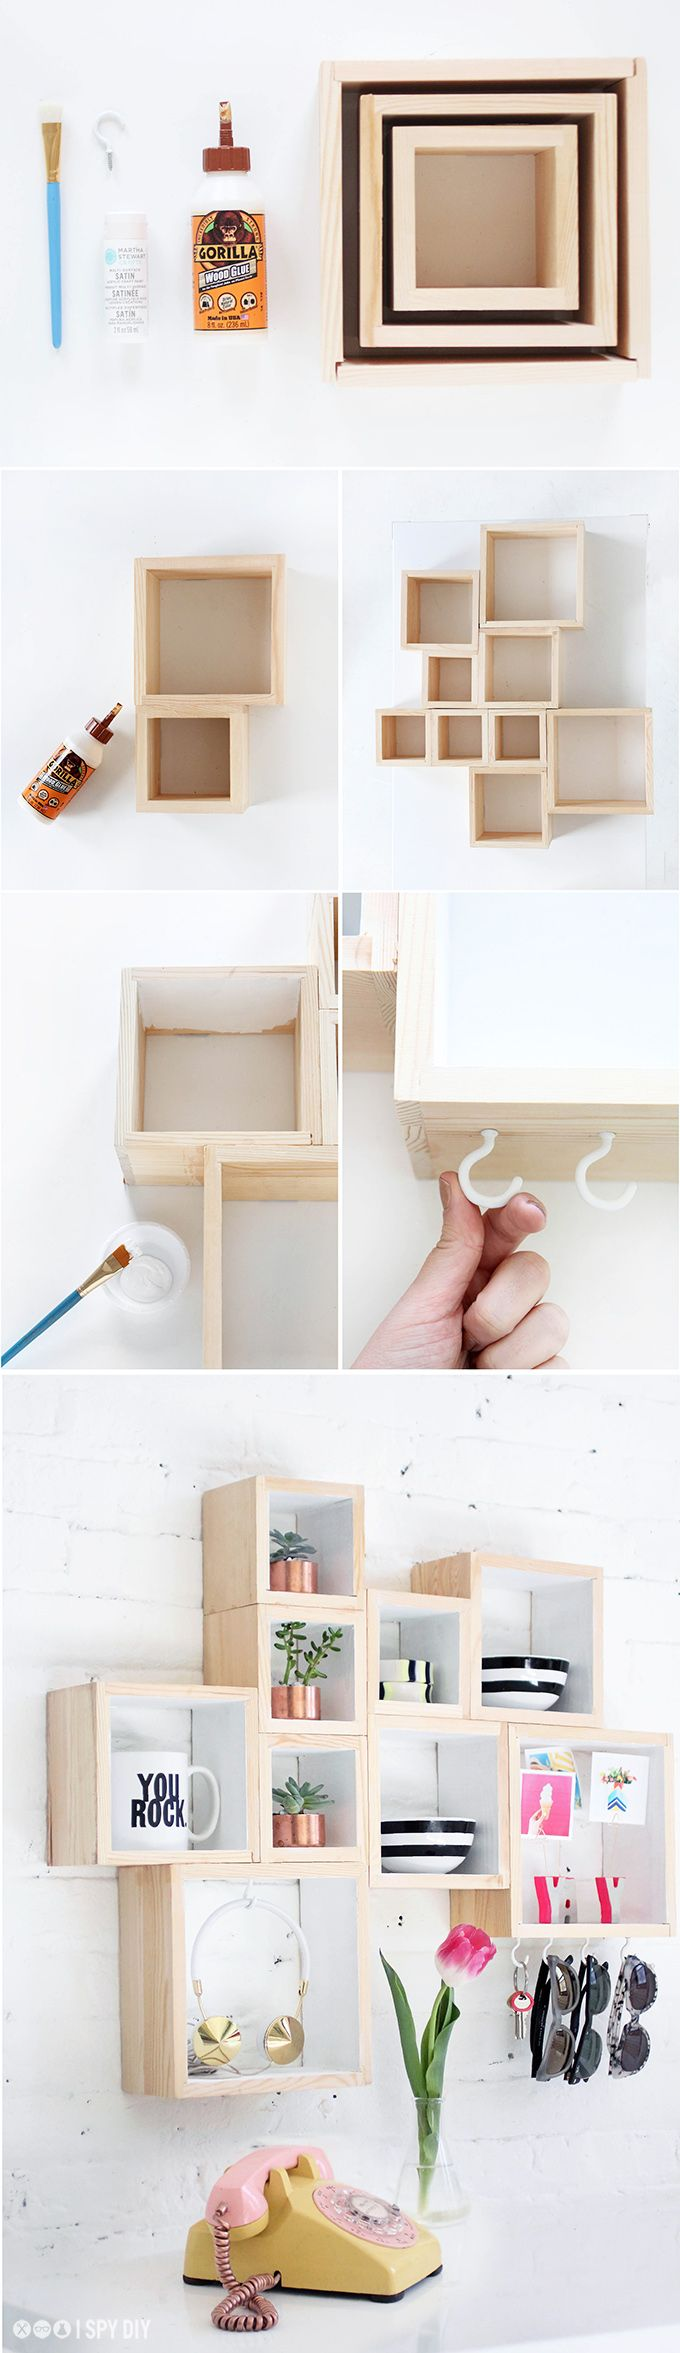 here s an idea for shelving with character  box frames. 0c9d20175fa2